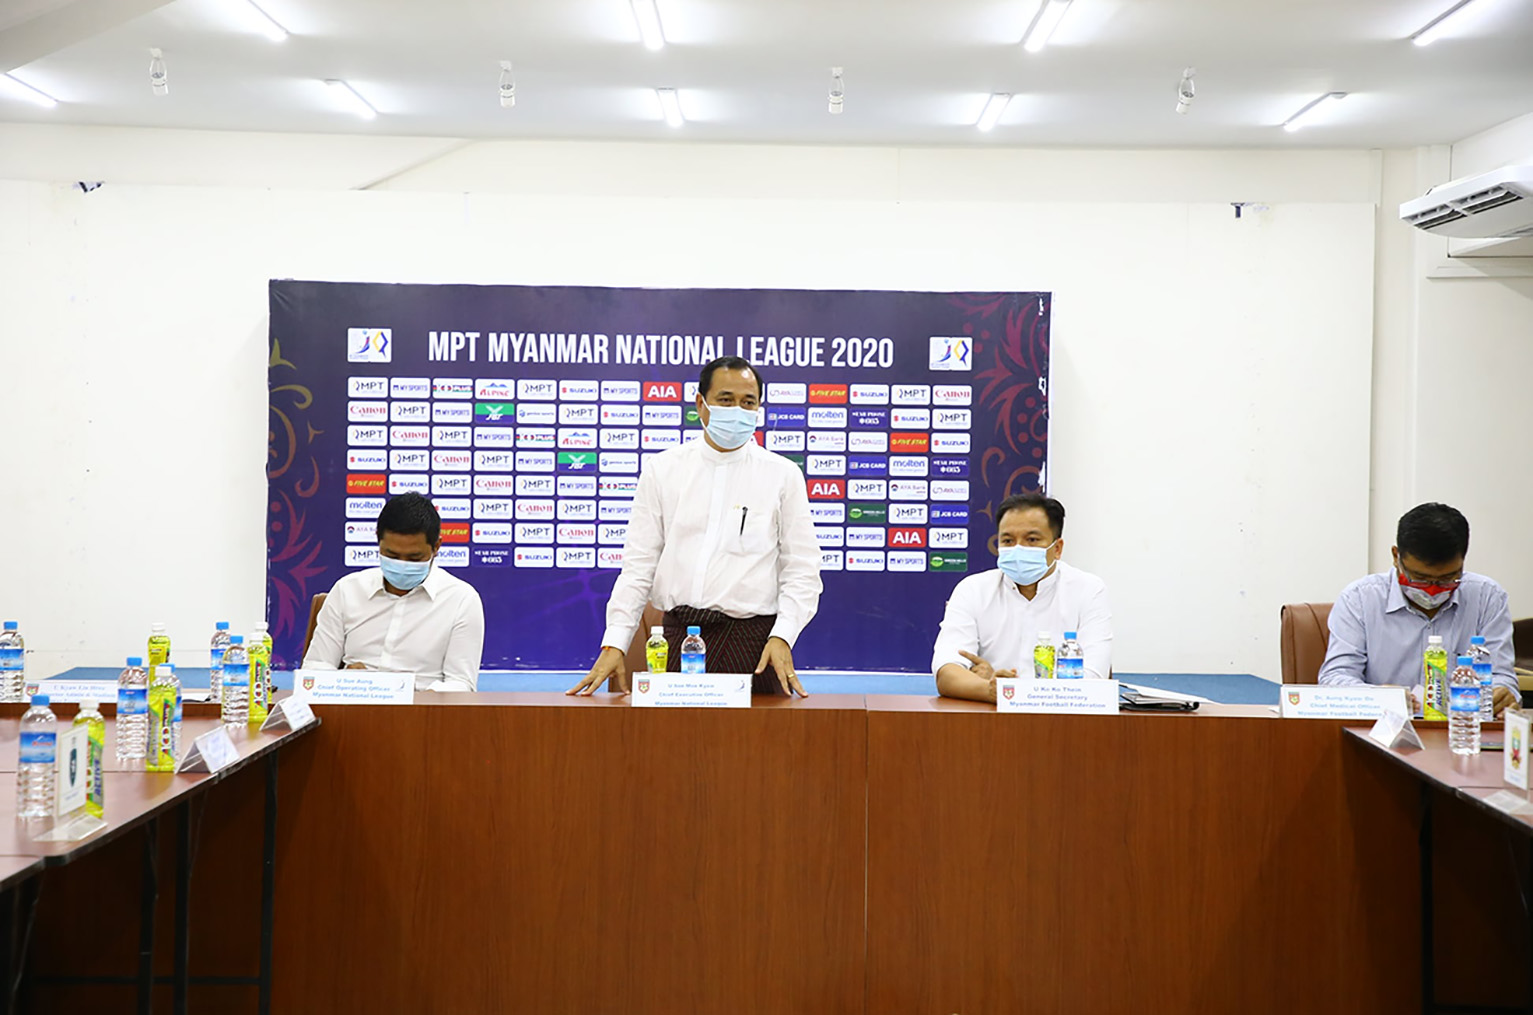 Football authorities focus on Myanmar National League's preparations at the coordination meeting in Yangon on 6 August.Photo:MNL